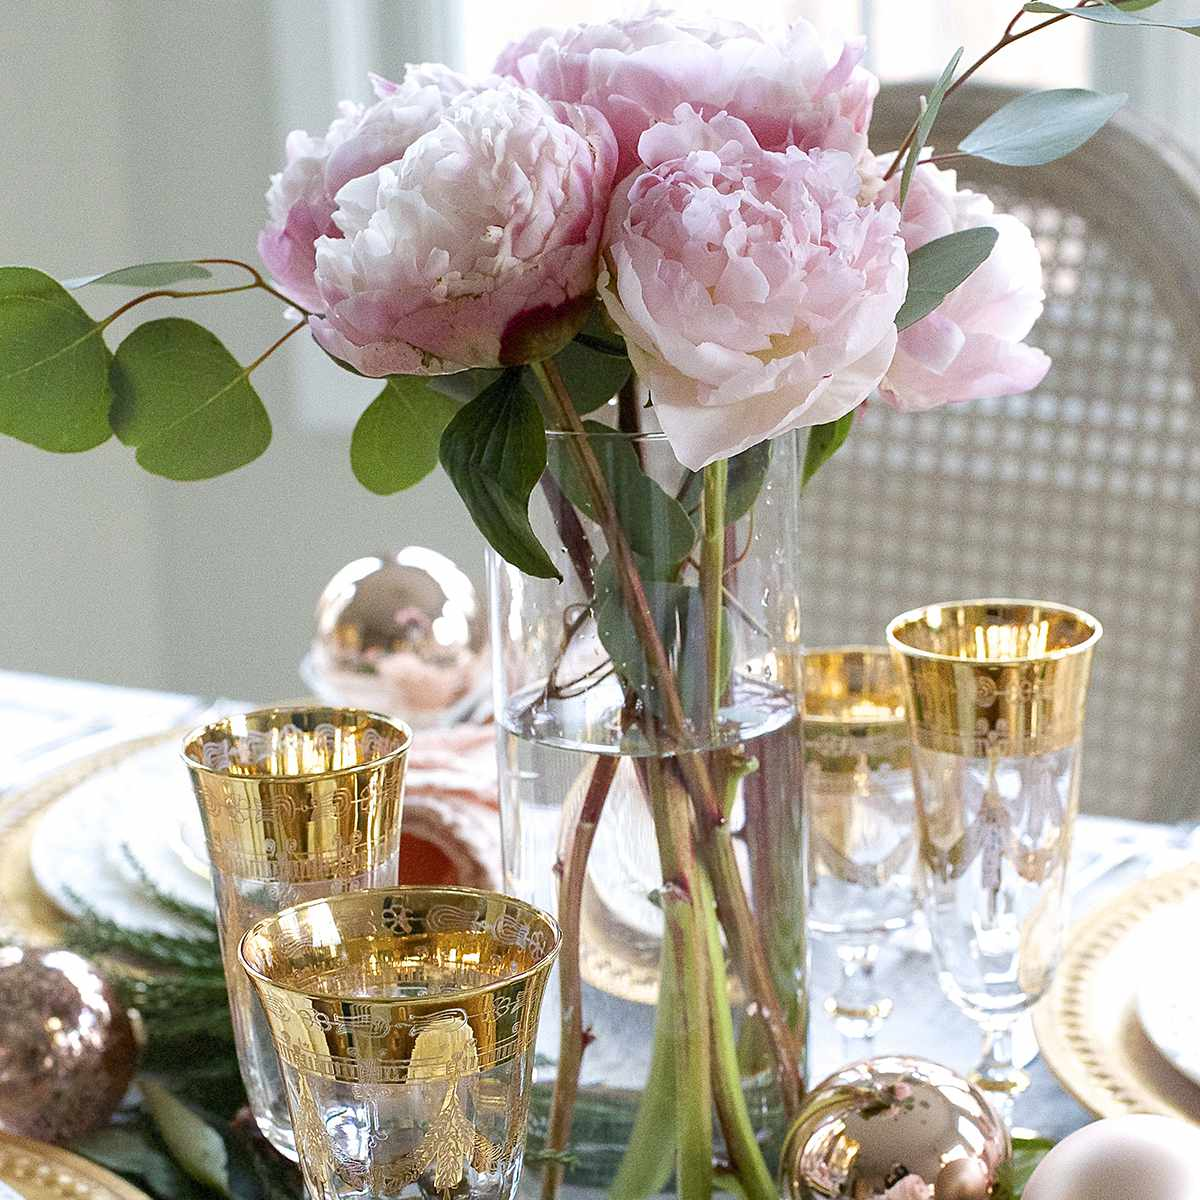 Table with gold-plated glassware and a vase of pink peonies.